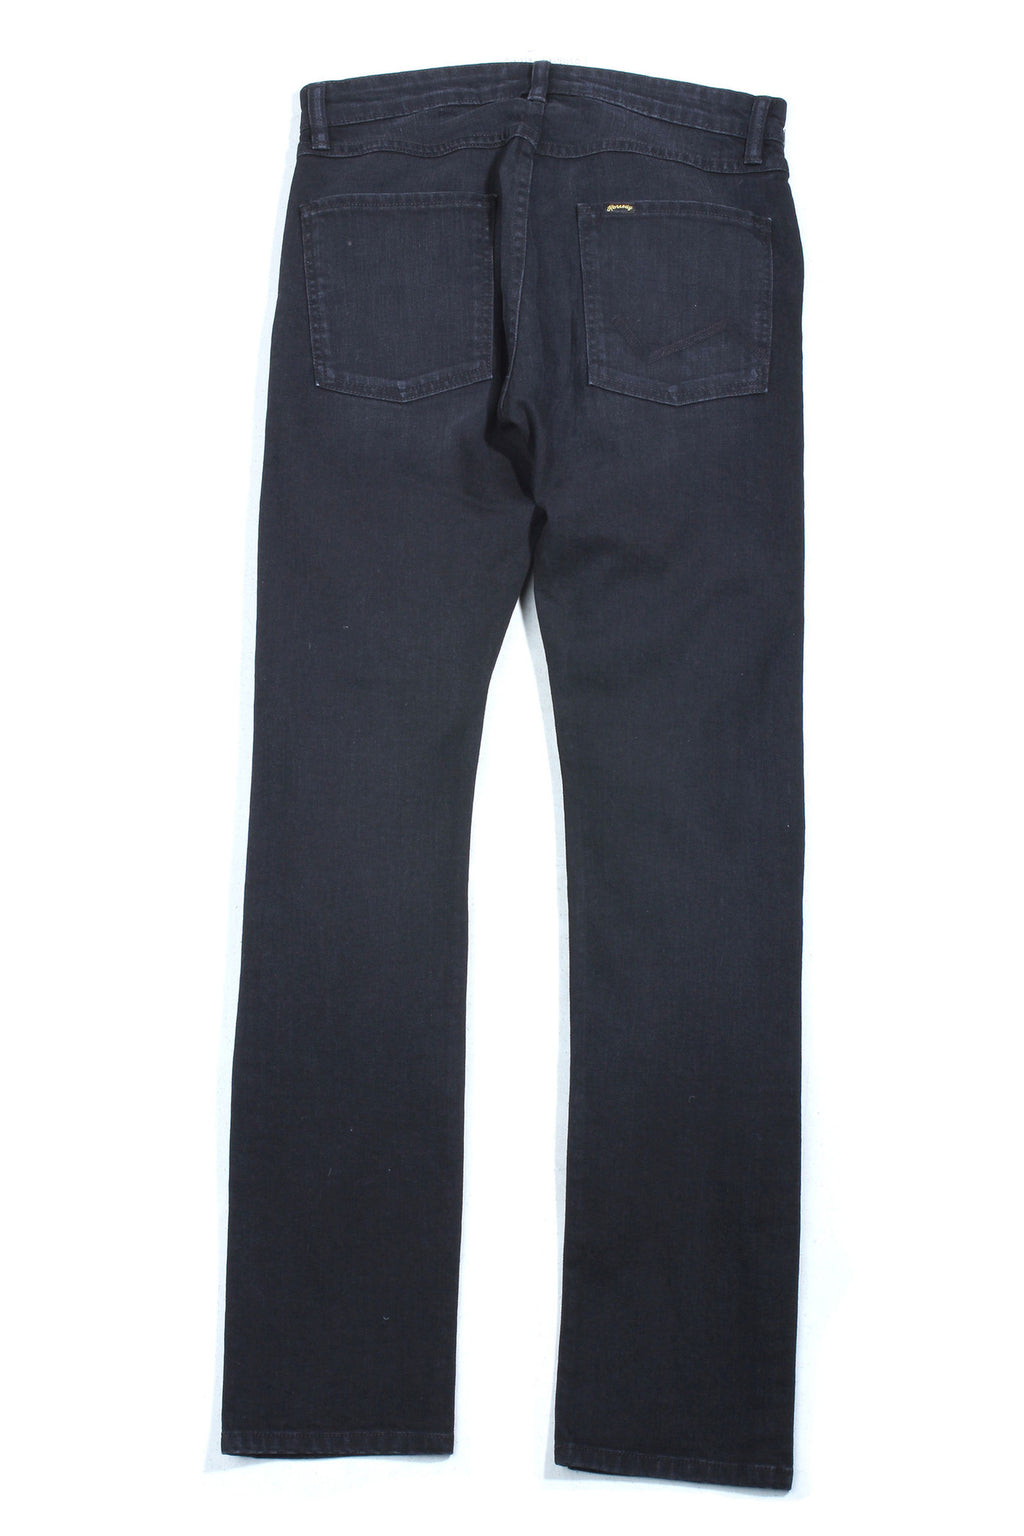 Kennedy Denim Z-Line Pants Isley Pants Ascent Wear - 2